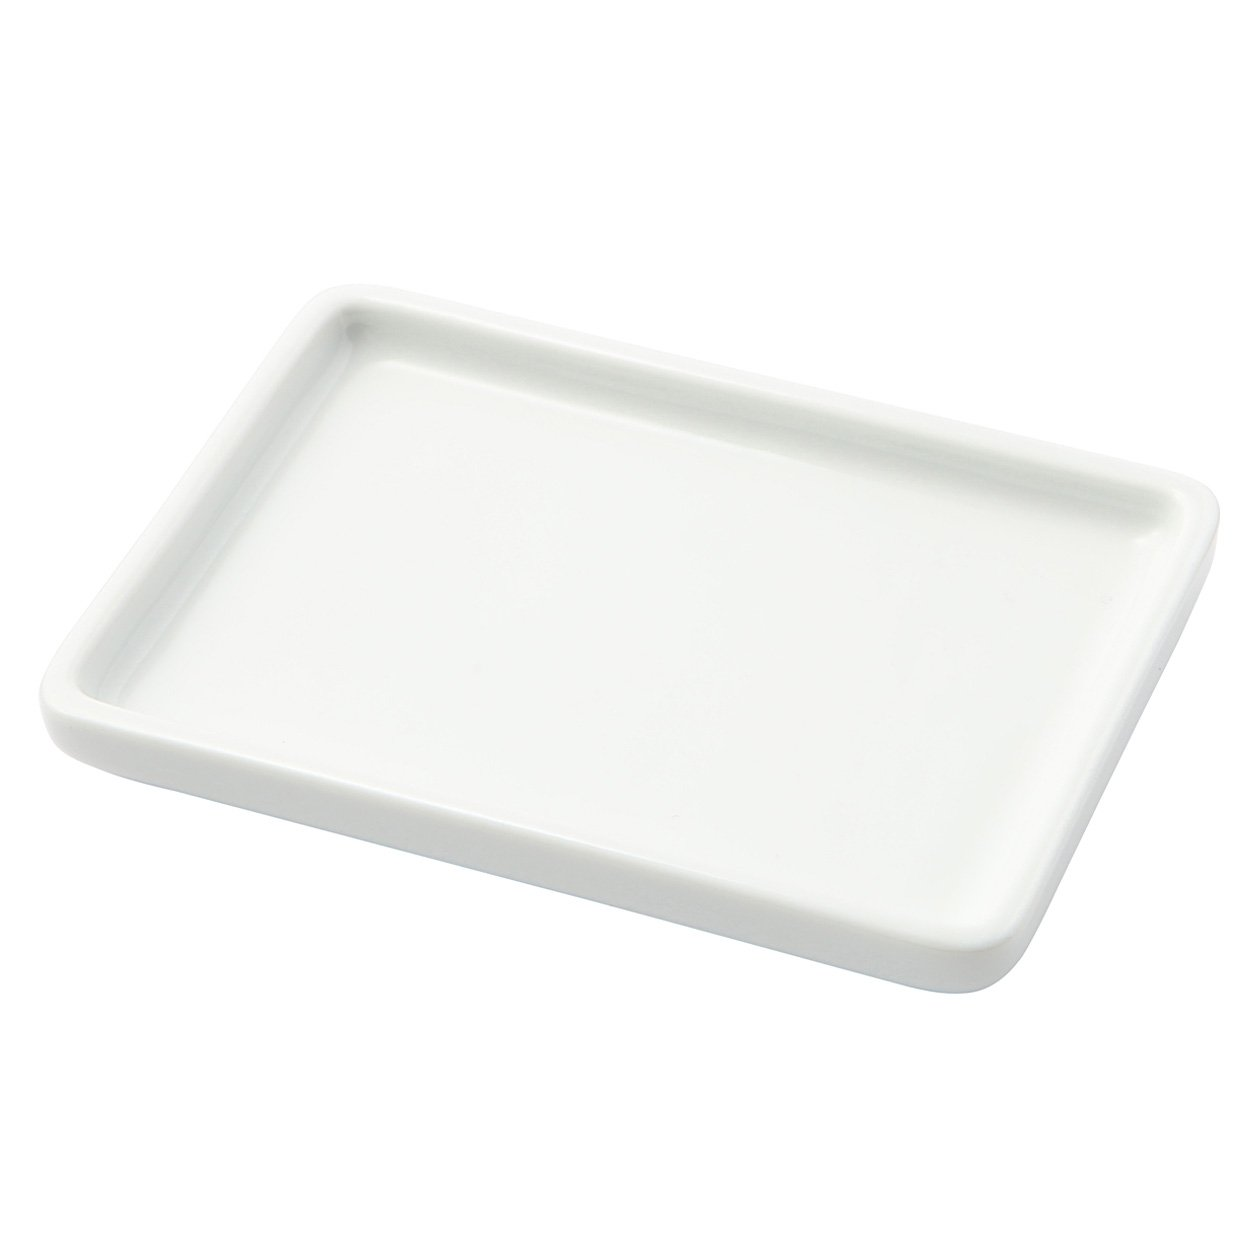 Amazon.com: MUJI Stainless Soap Dish and White Porcelain Tray ...